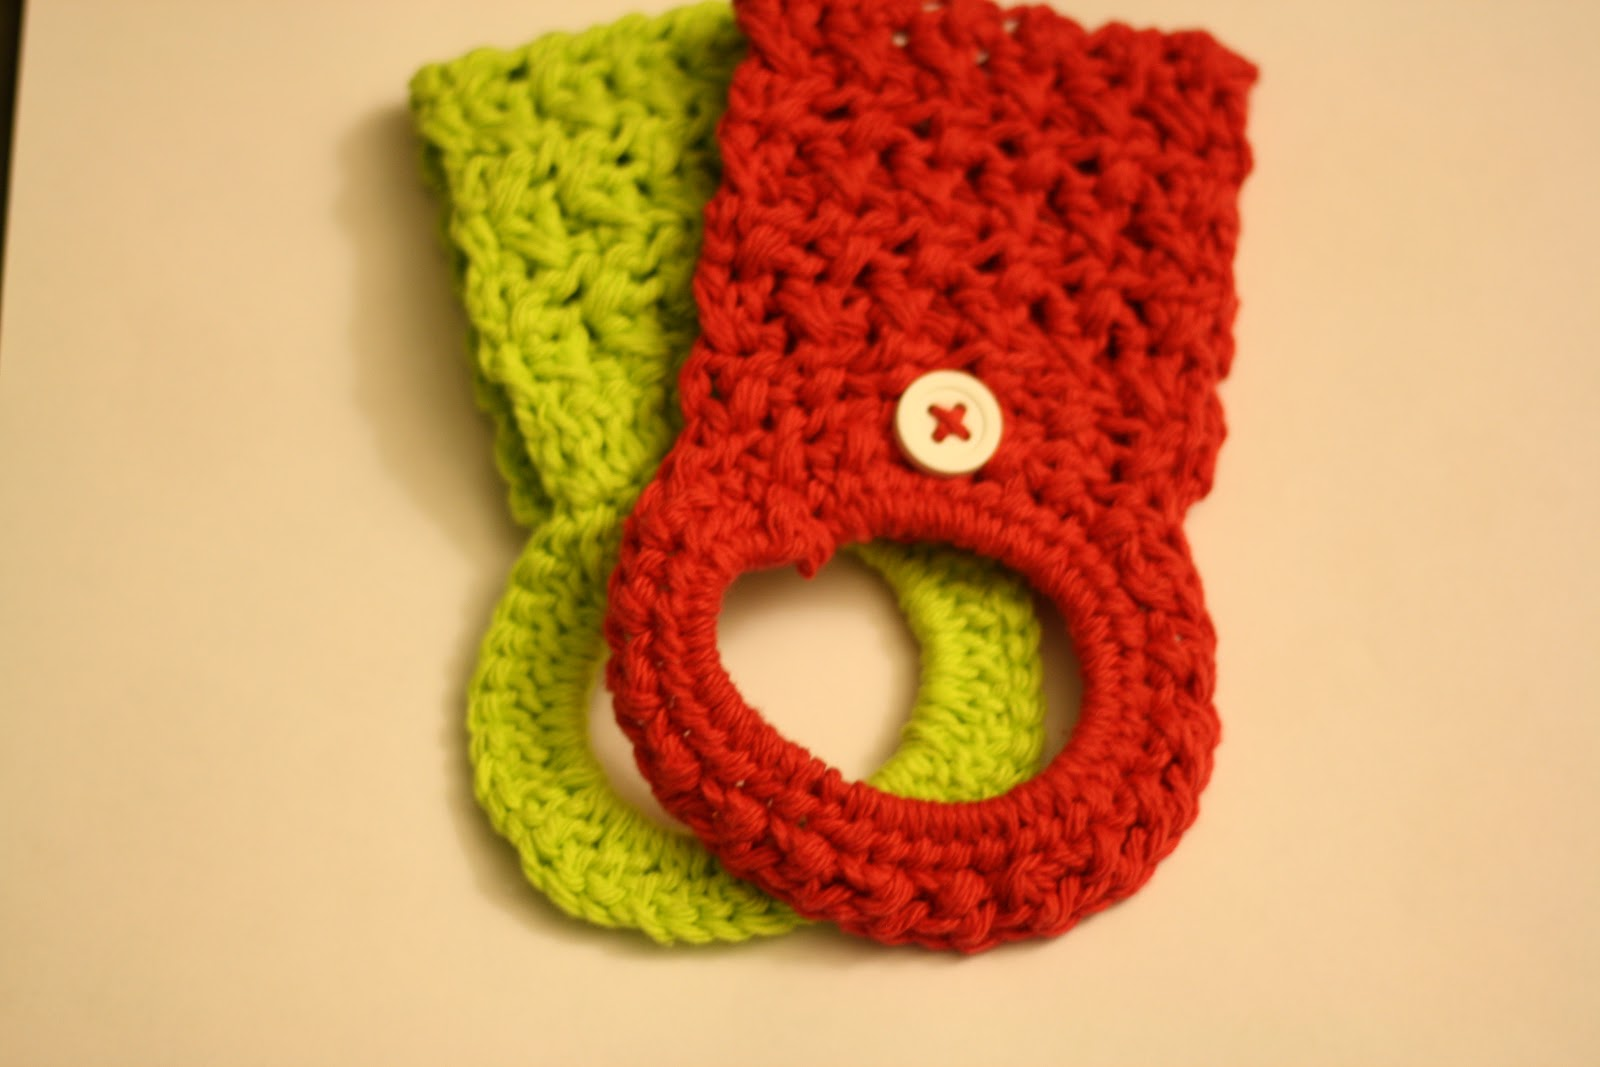 Free Crochet Patterns For Kitchen Towel Holders : Tales of a Crafty Mommy: Crochet Towel Holder Ring Tutorial